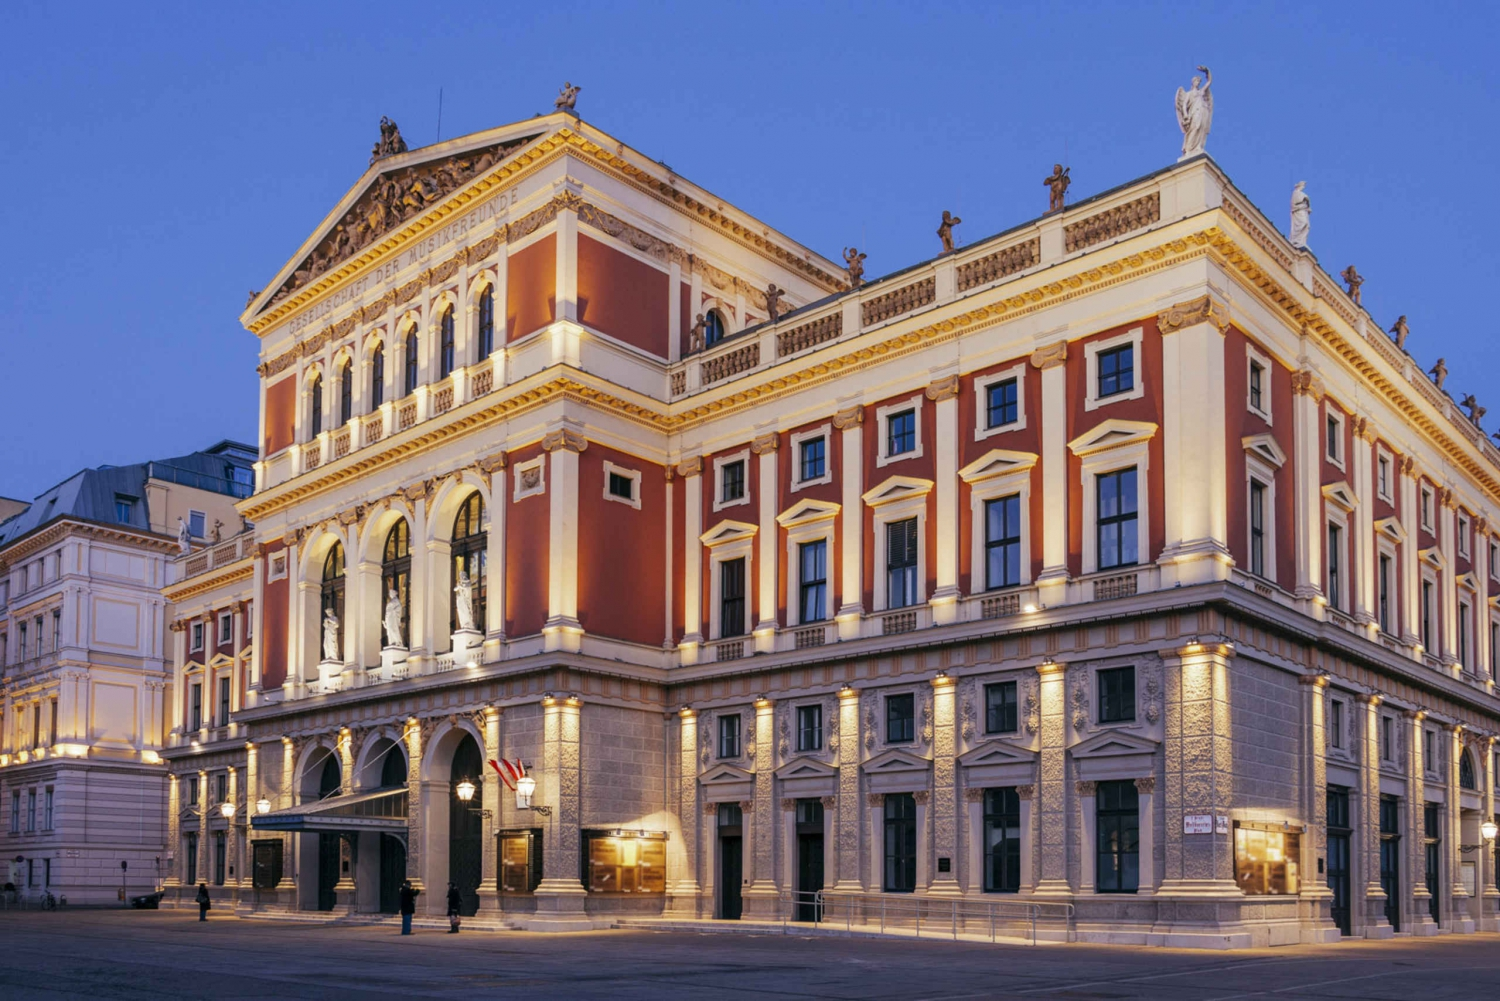 Classical Concert at the Musikverein